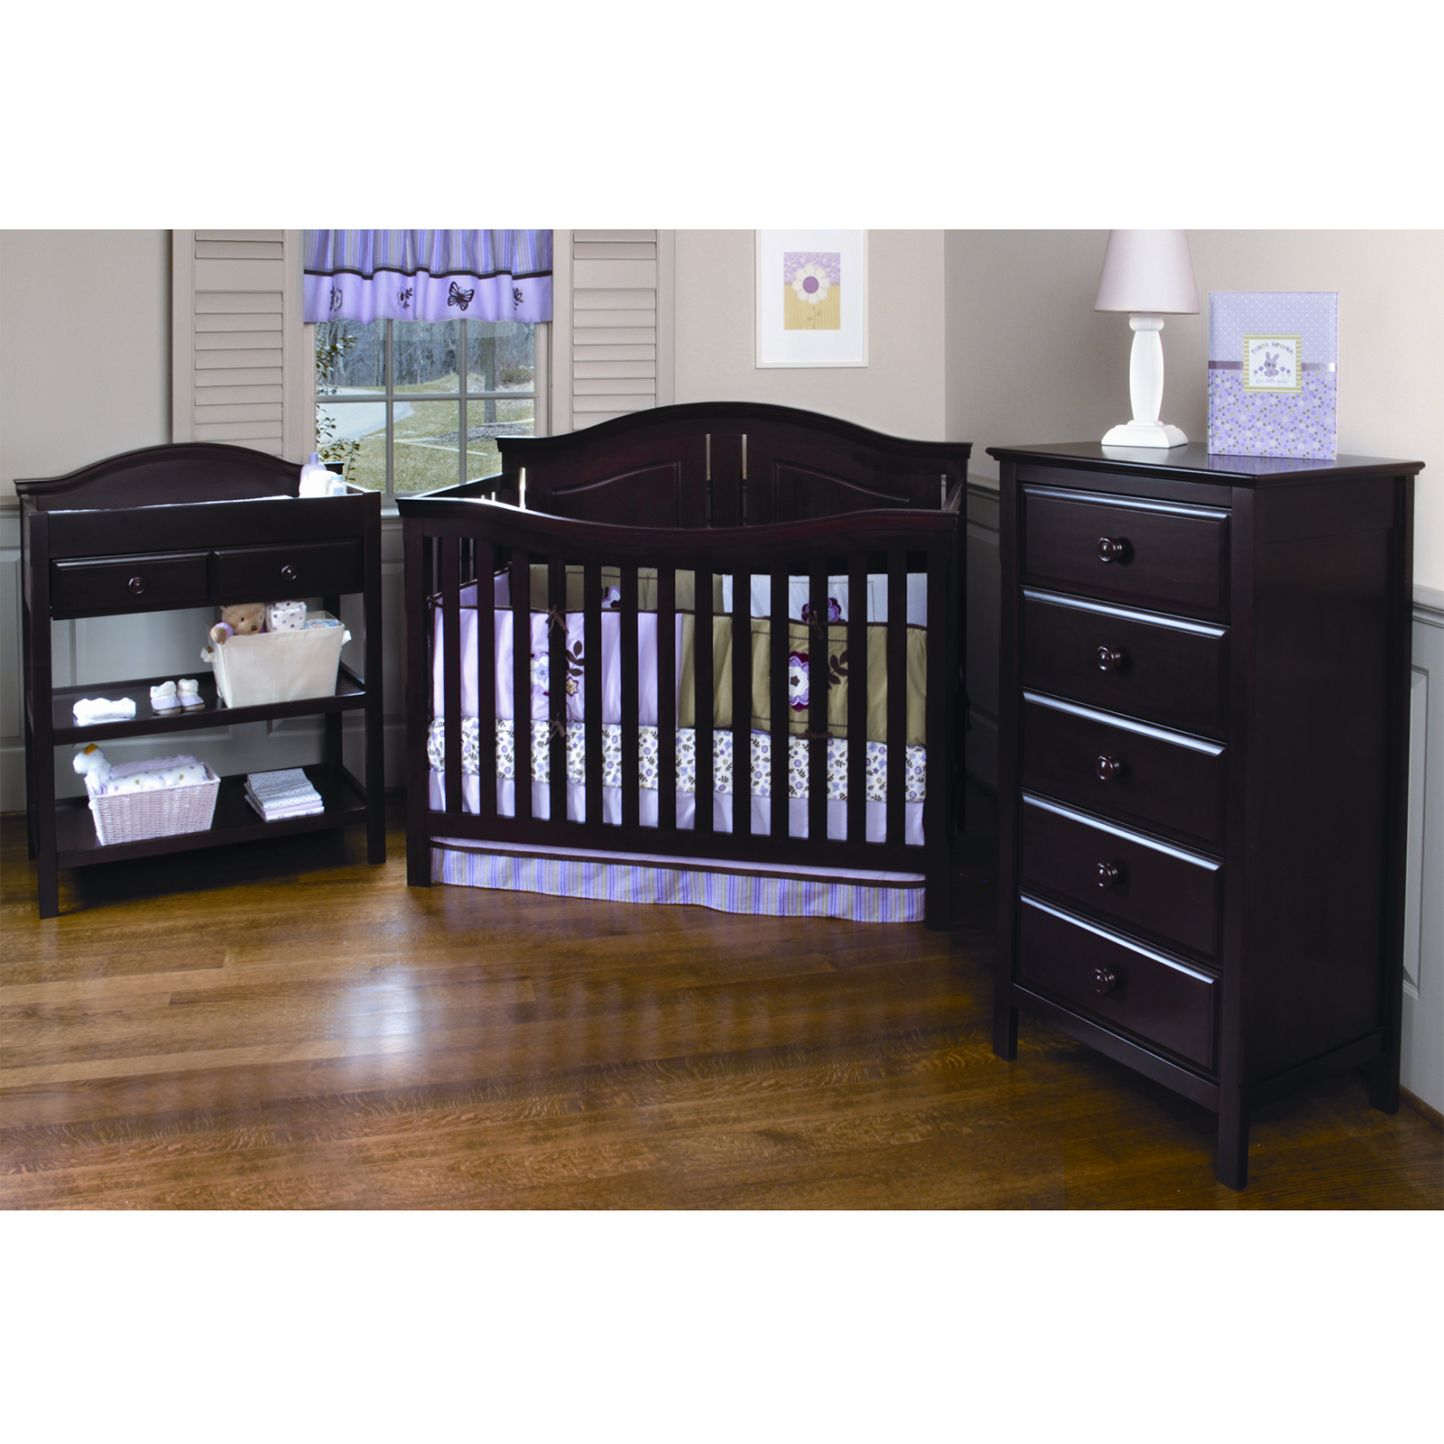 Burlington Coat Factory Baby Furniture Best Paint For Interior Walls Check More At Http Www Chulaniphotography Nursery Room Decor Furniture Baby Furniture